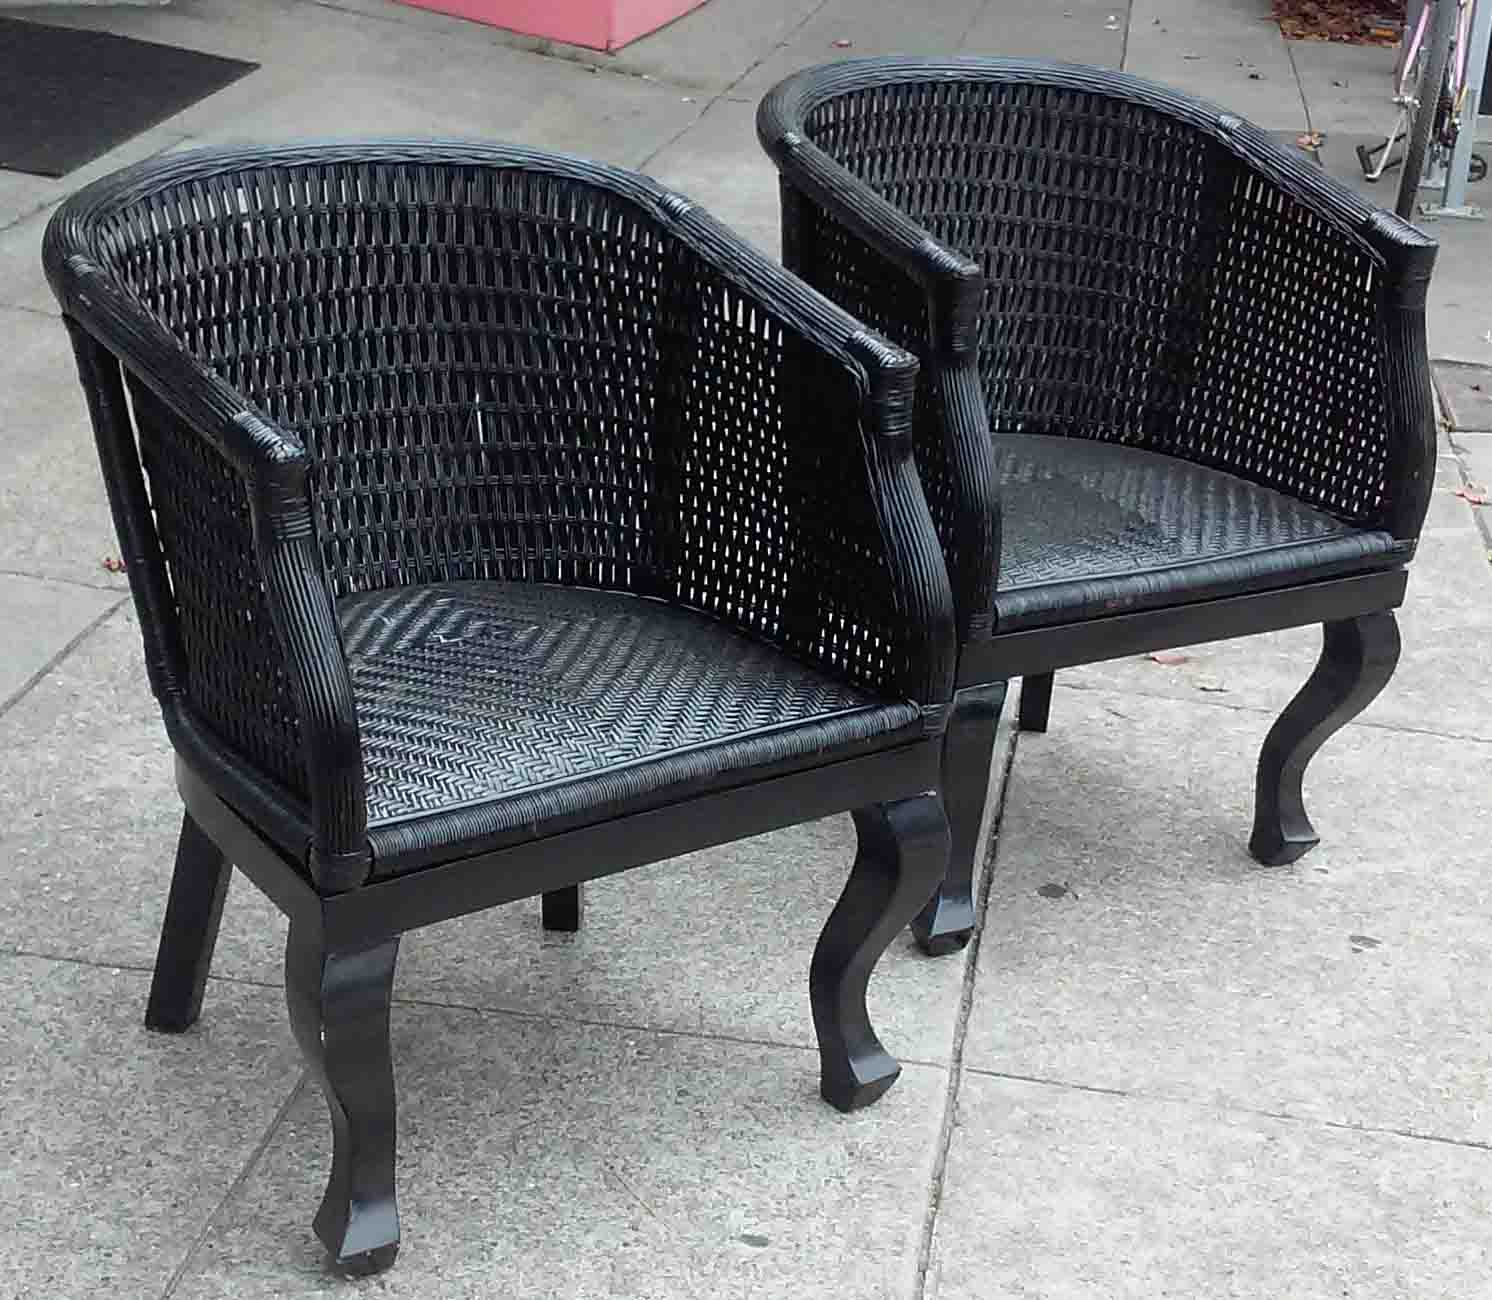 Black Wicker Patio Chairs Inspiration - pixelmari.com